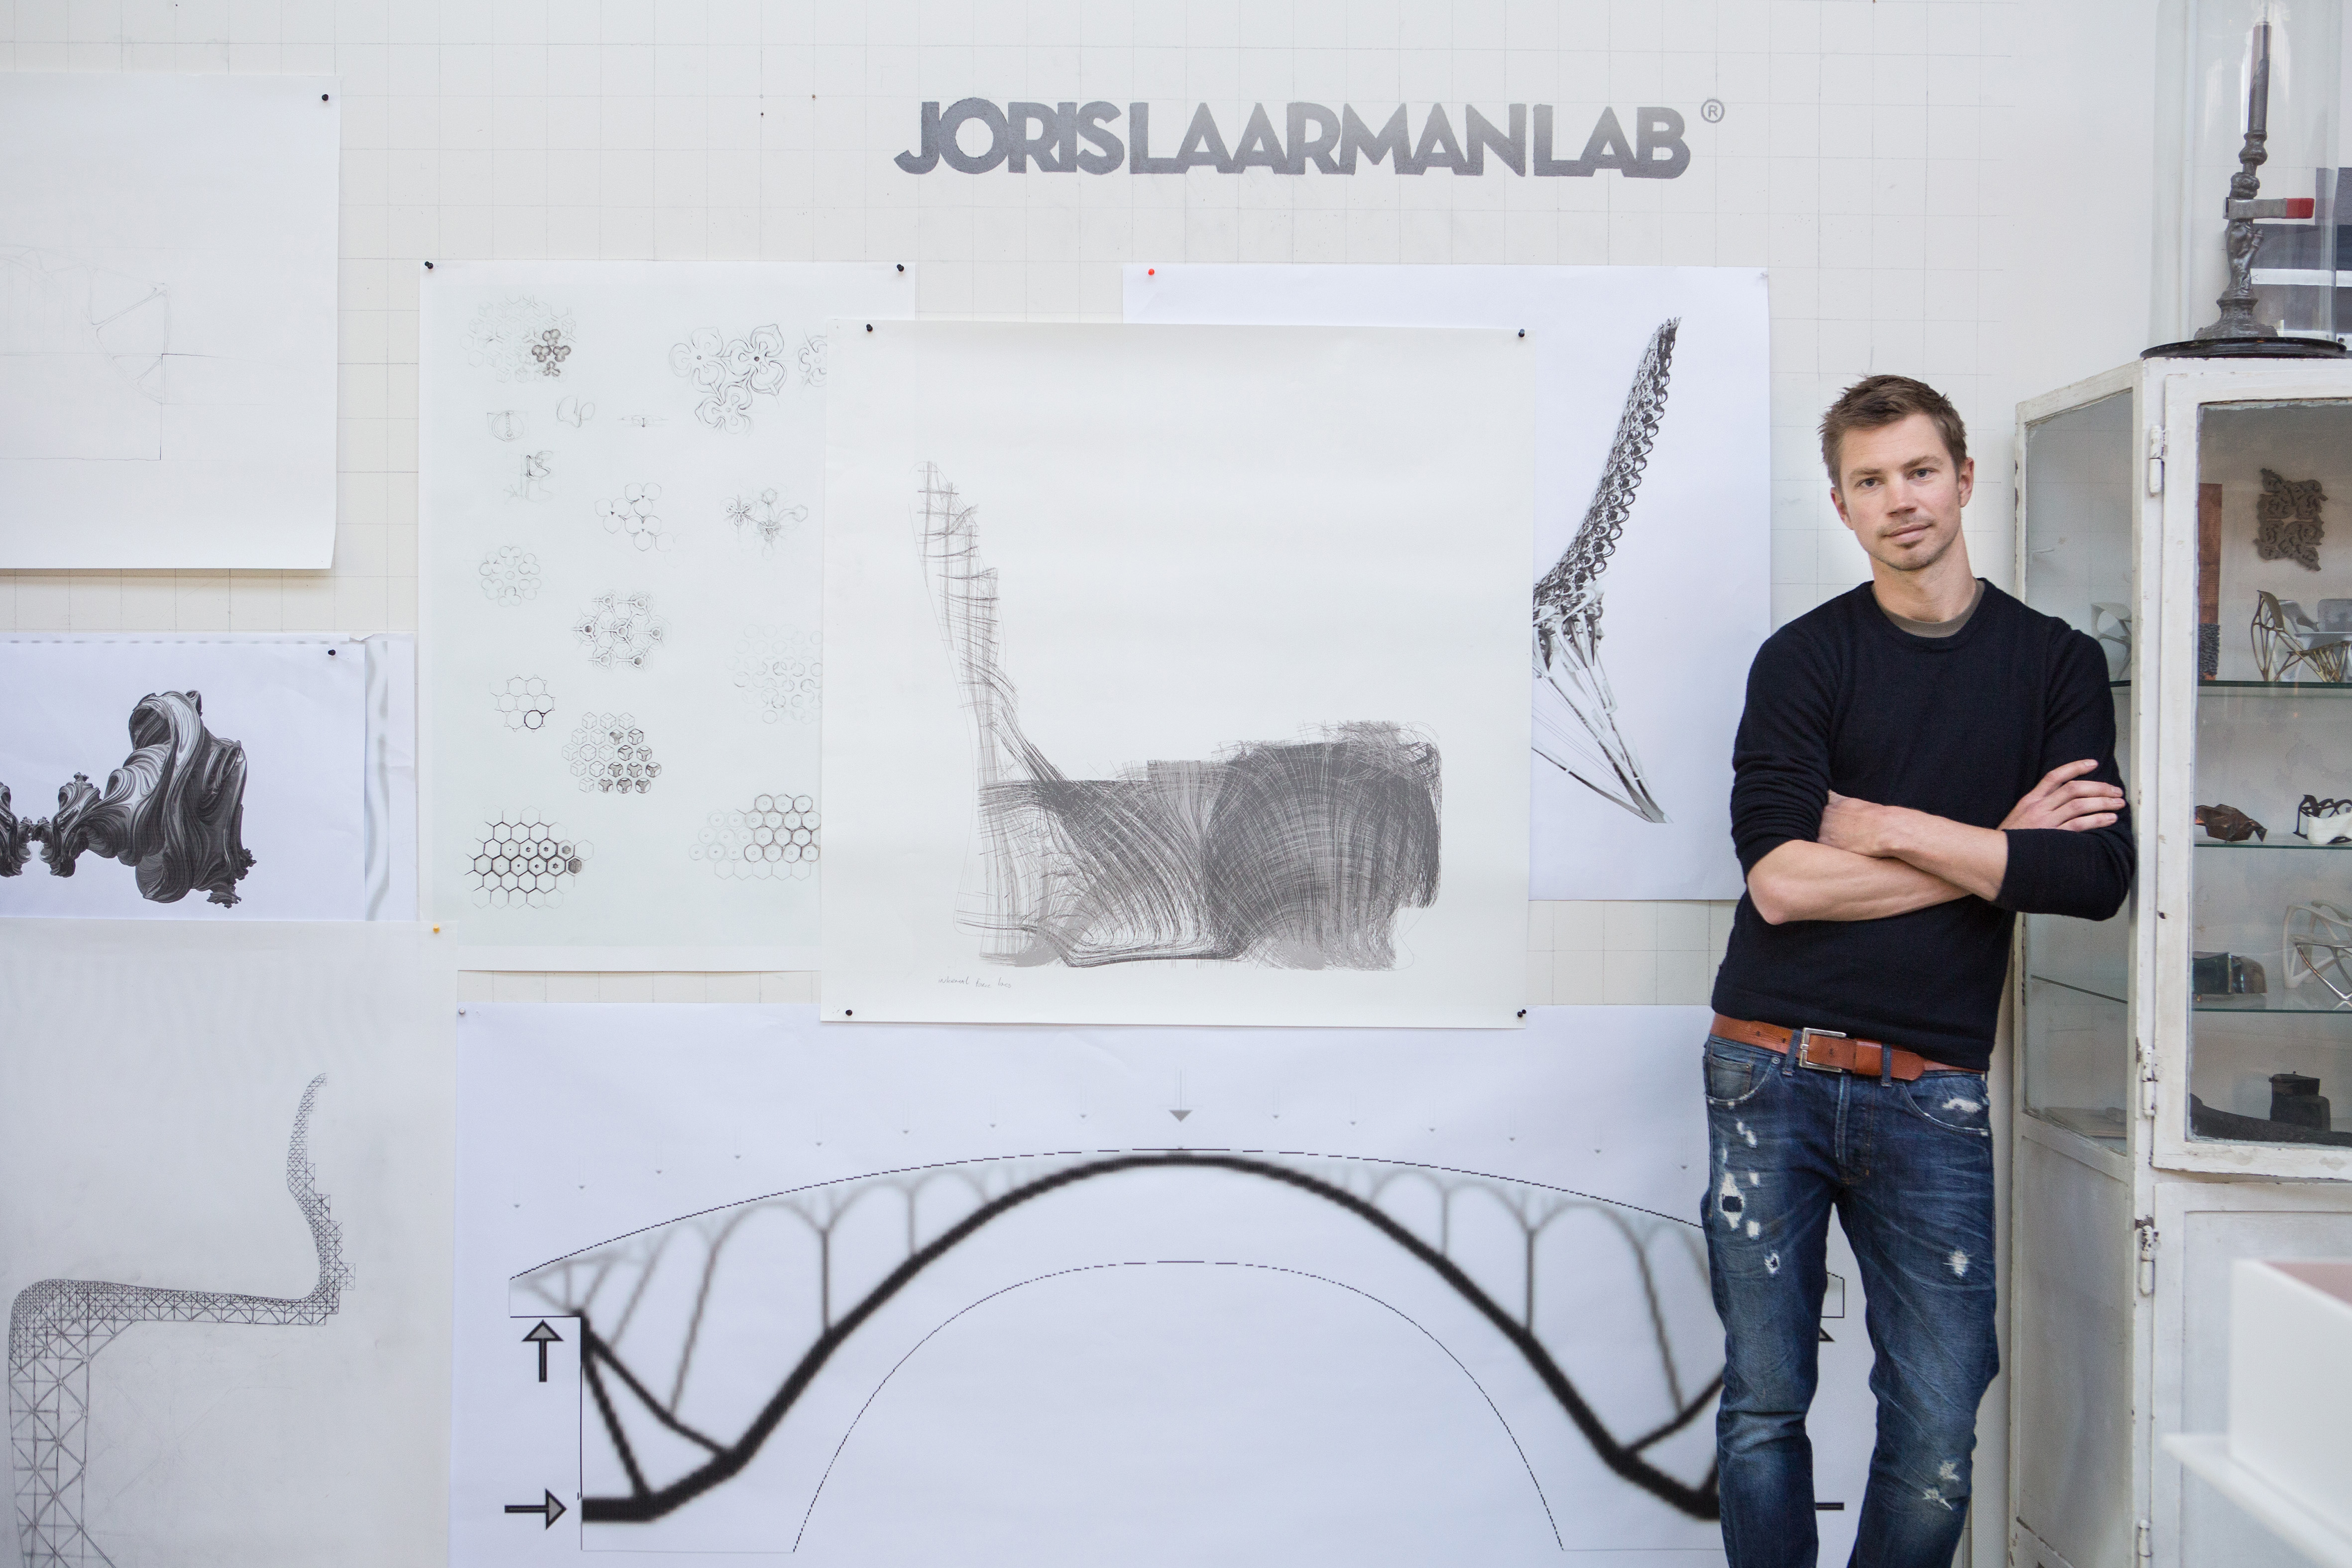 Portrait Joris Laarman - Courtesy of Joris Laarman Lab